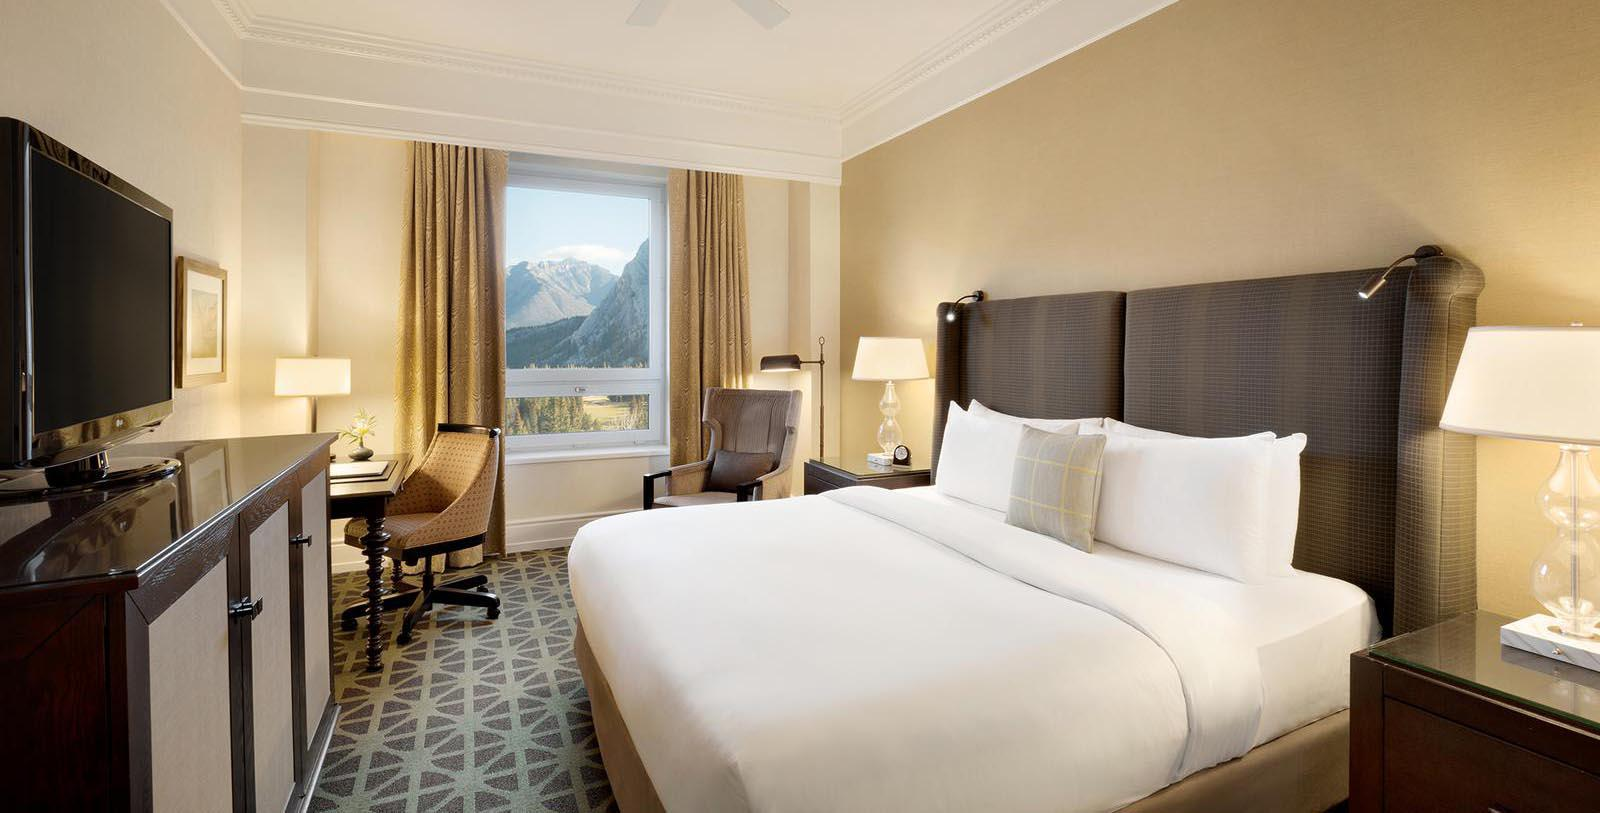 Image of guestroom Fairmont Banff Springs, 1888, Member of Historic Hotels Worldwide, in Banff, Alberta, Canada, Location Map